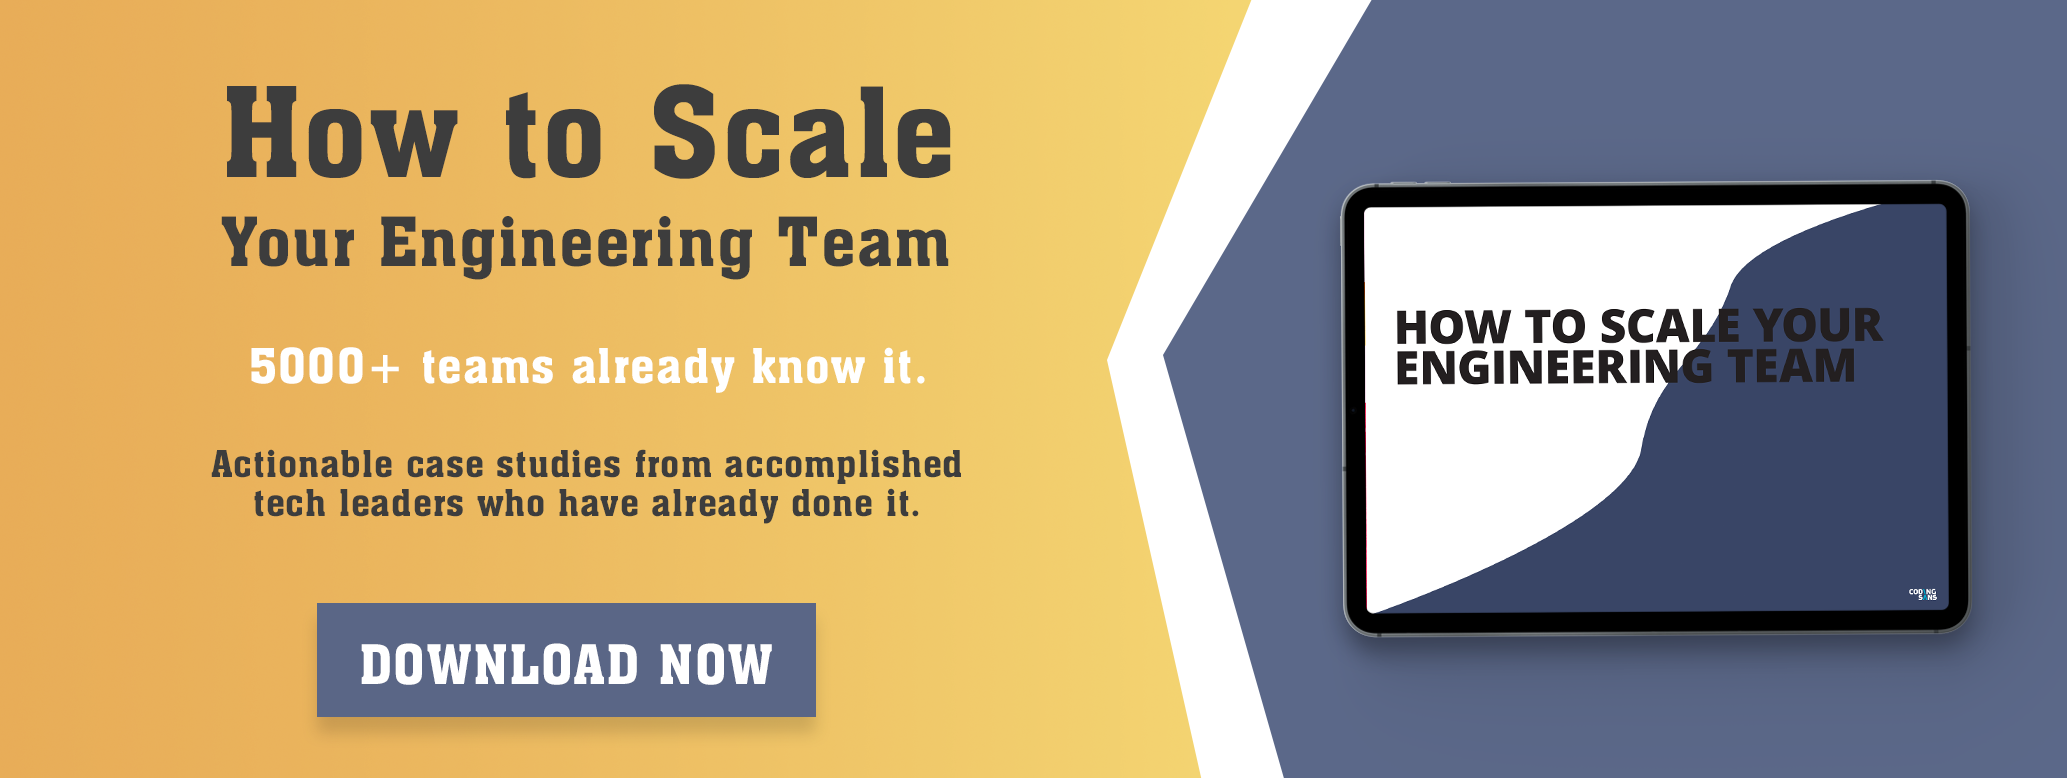 How to Scale Your Engineering Team